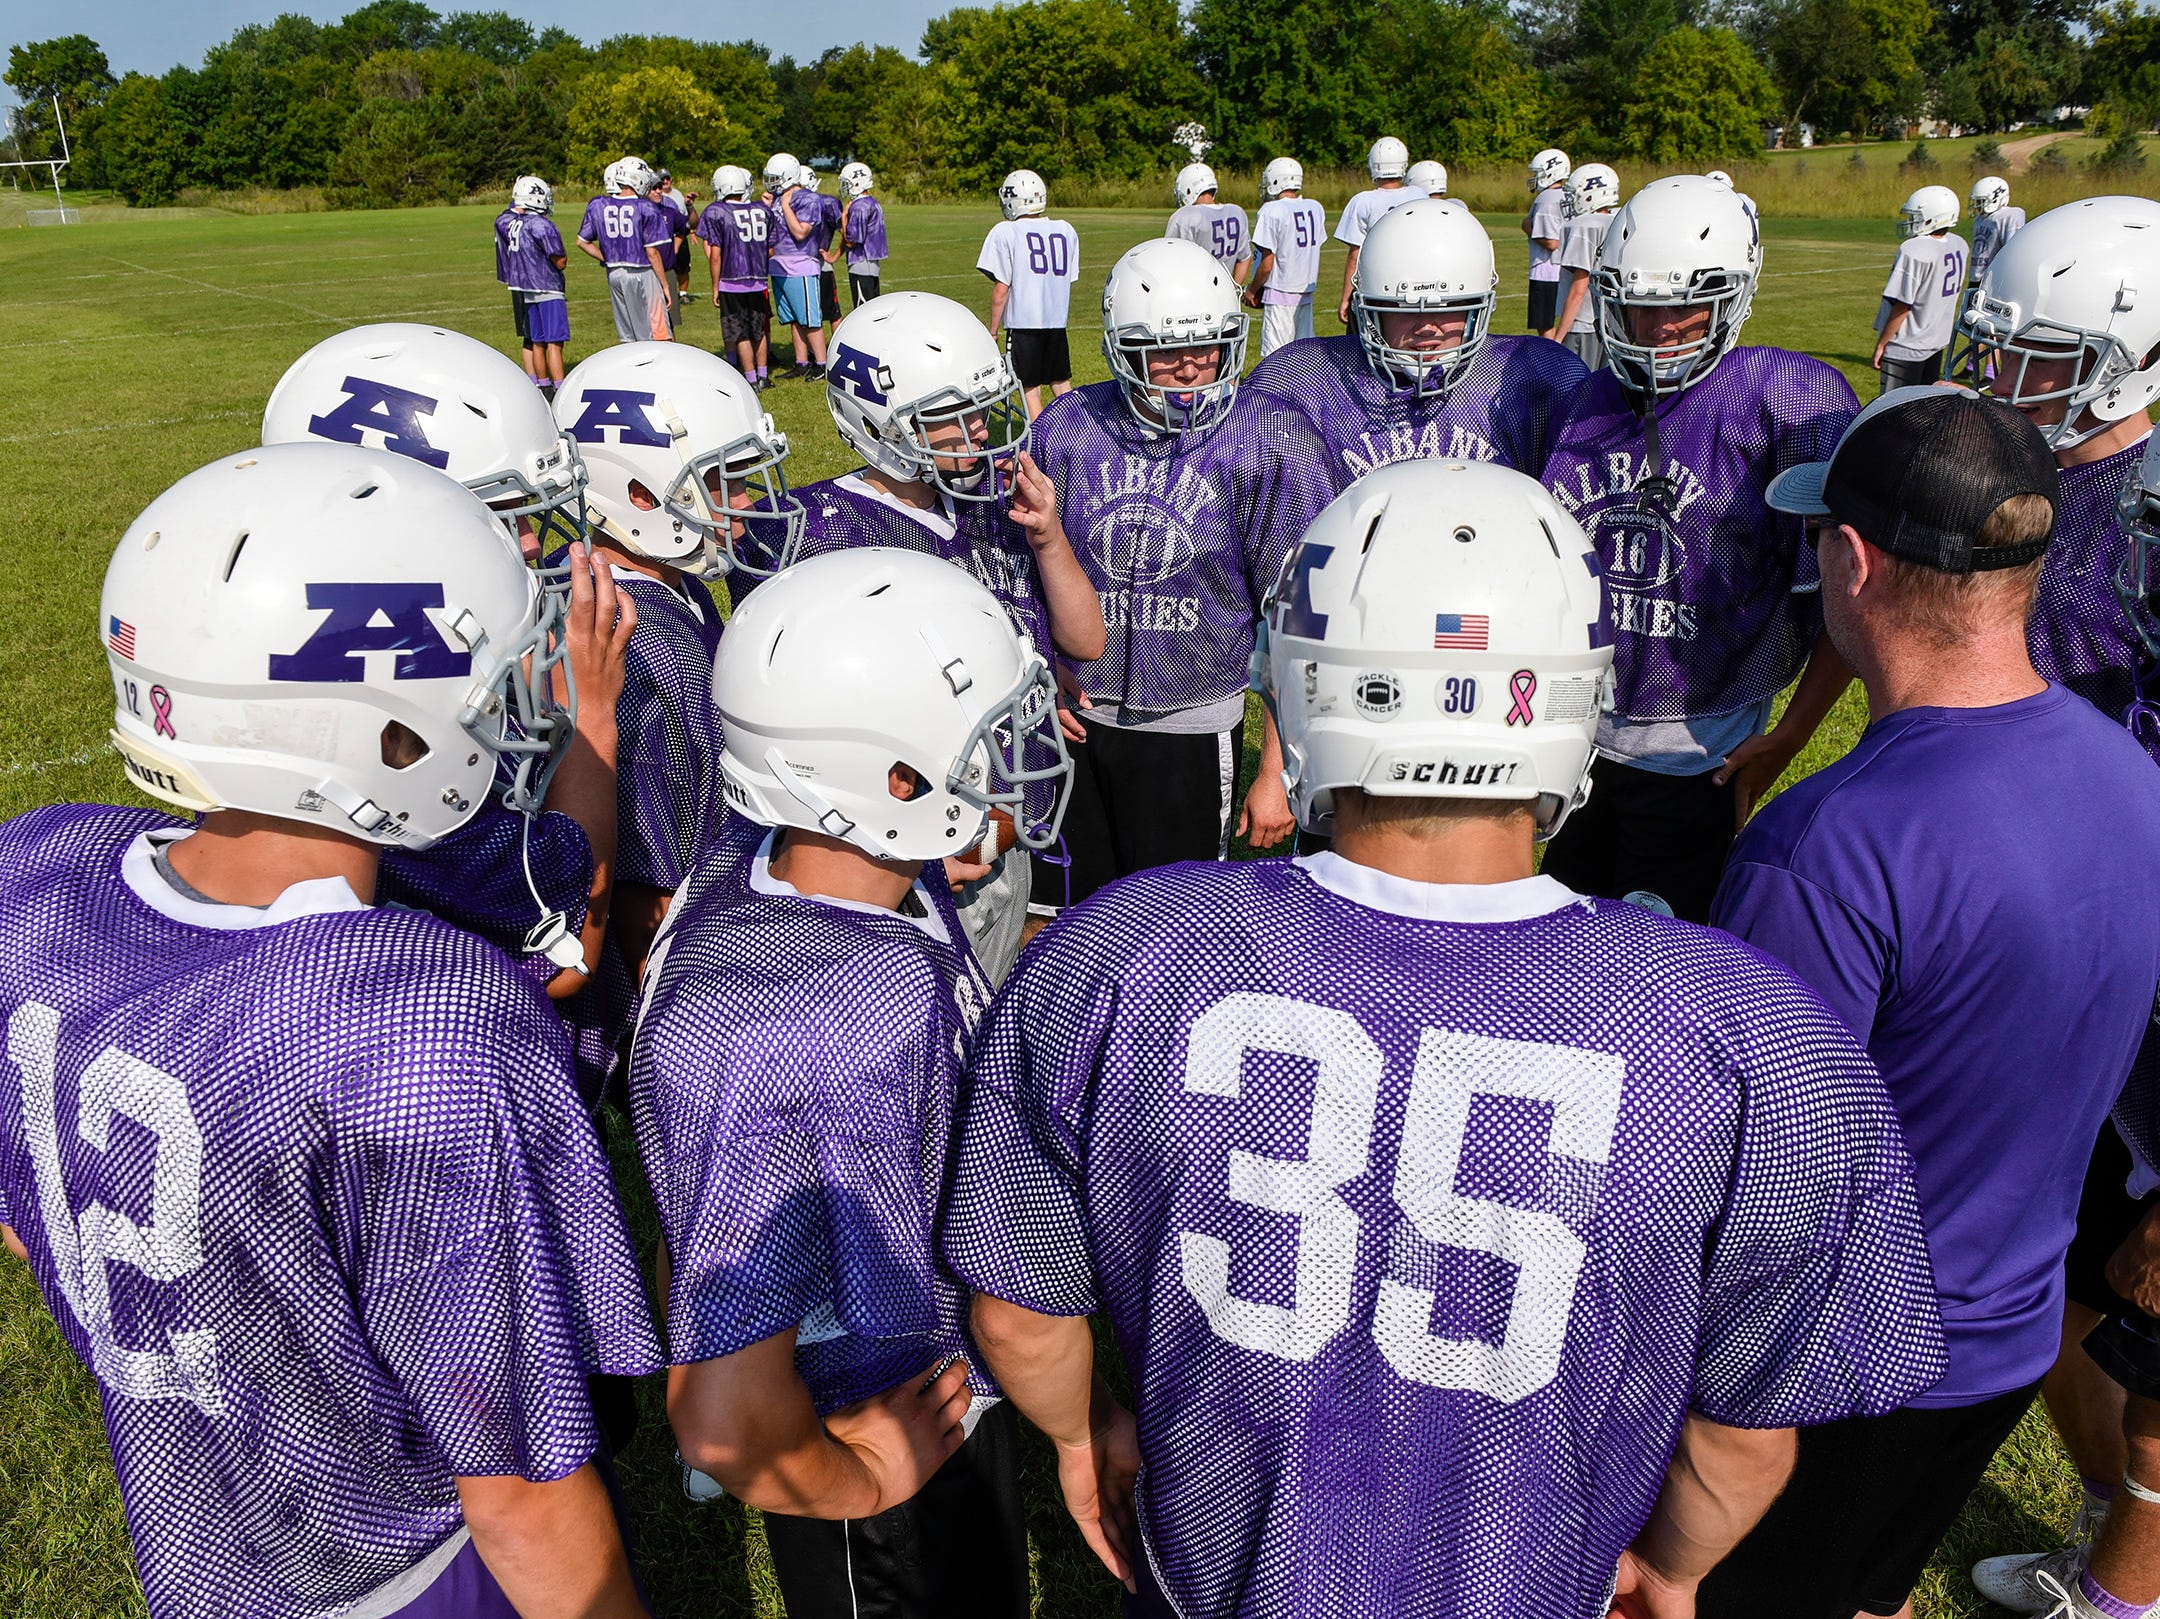 Albany players huddle before a play during practice Wednesday, Aug. 15, at the Albany High School.